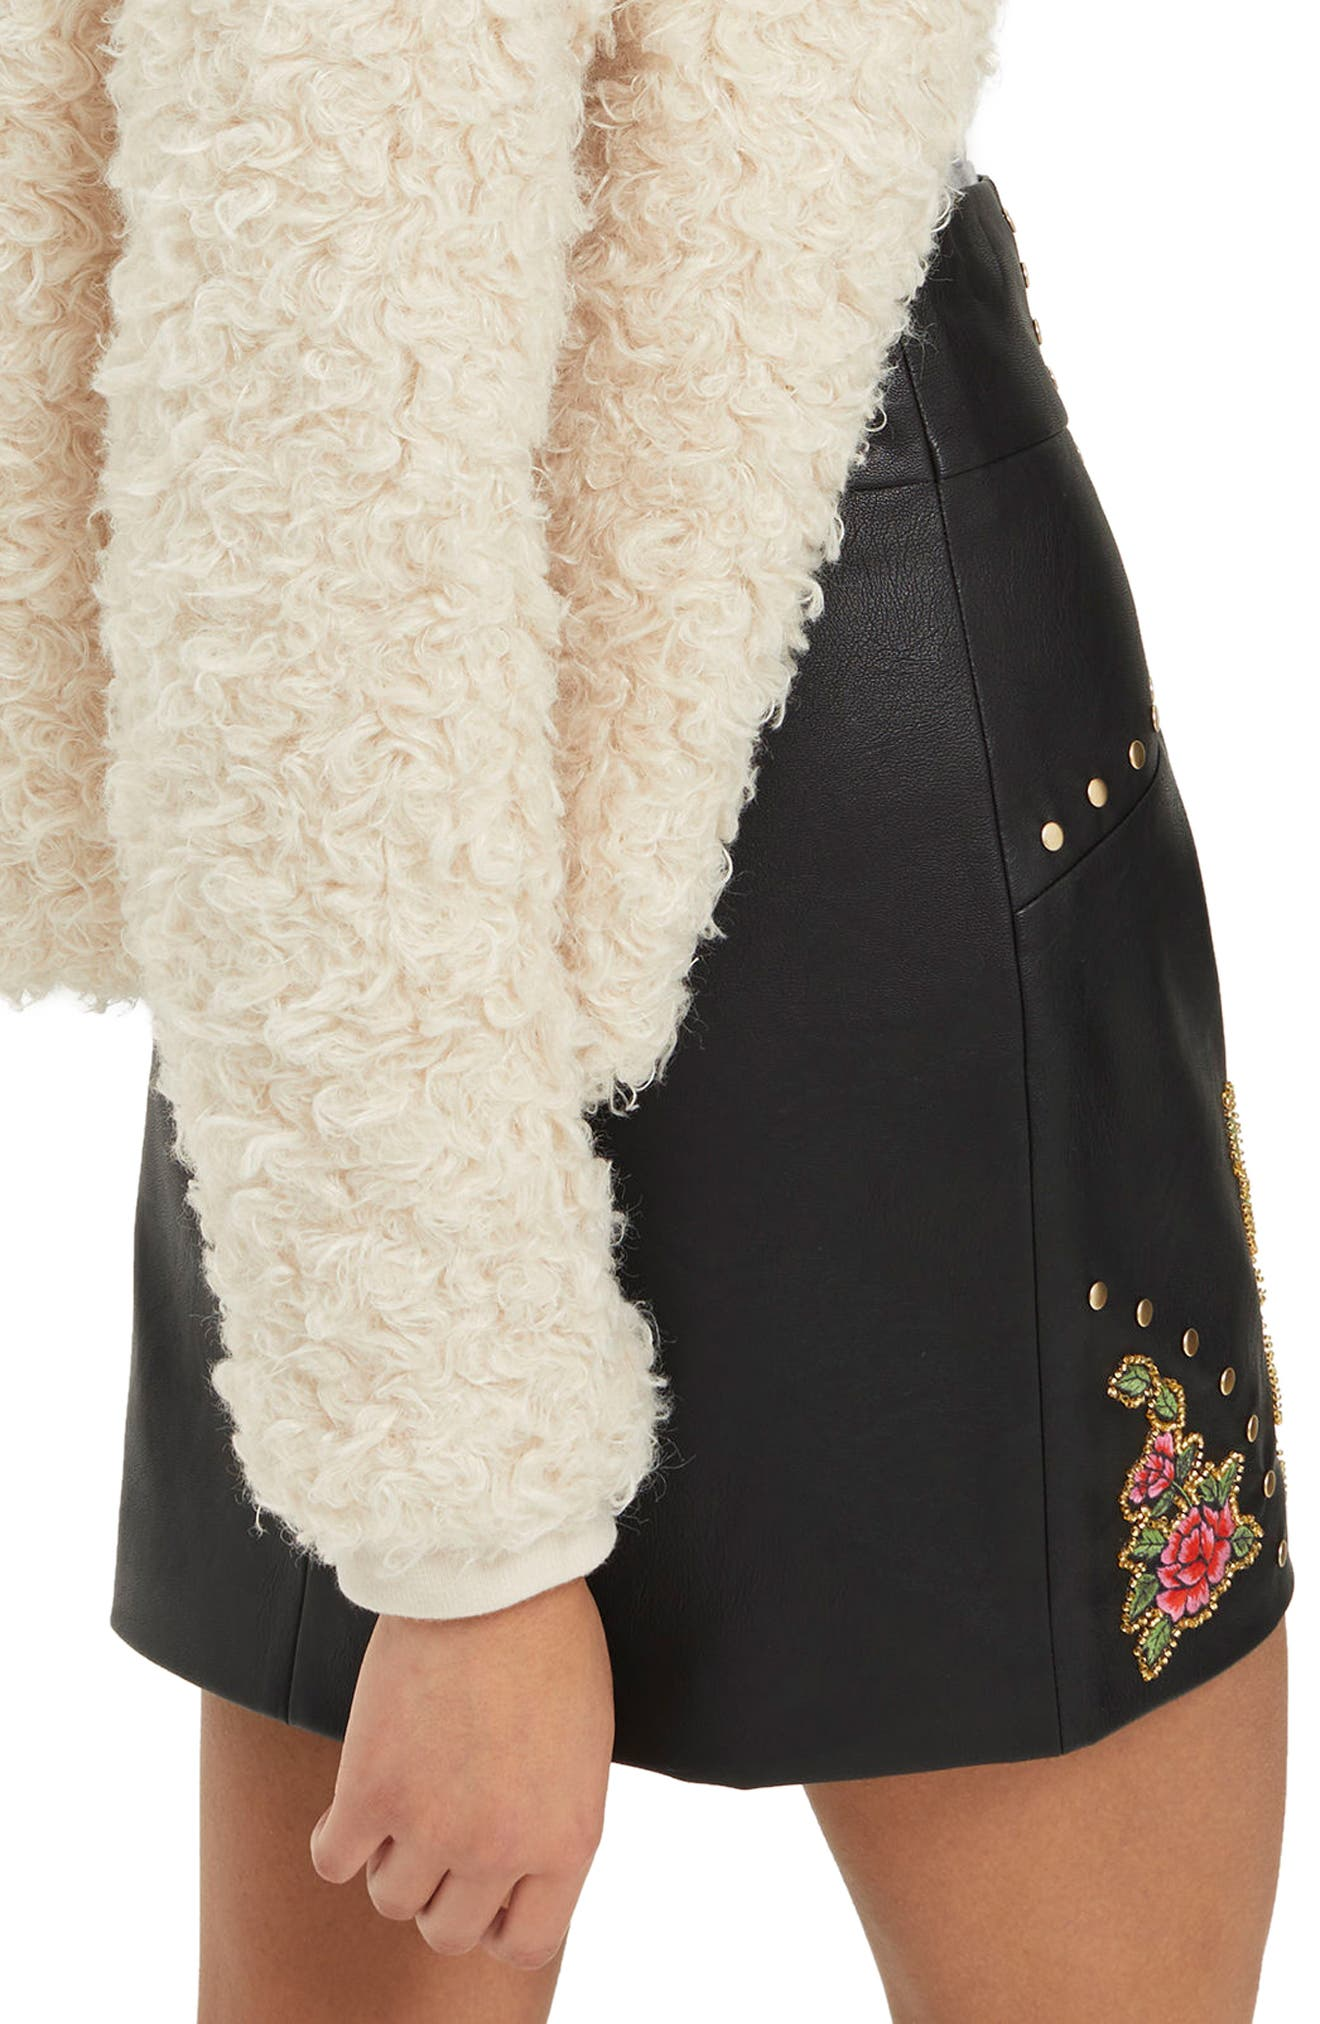 Embellished Floral Faux Leather Skirt,                             Alternate thumbnail 2, color,